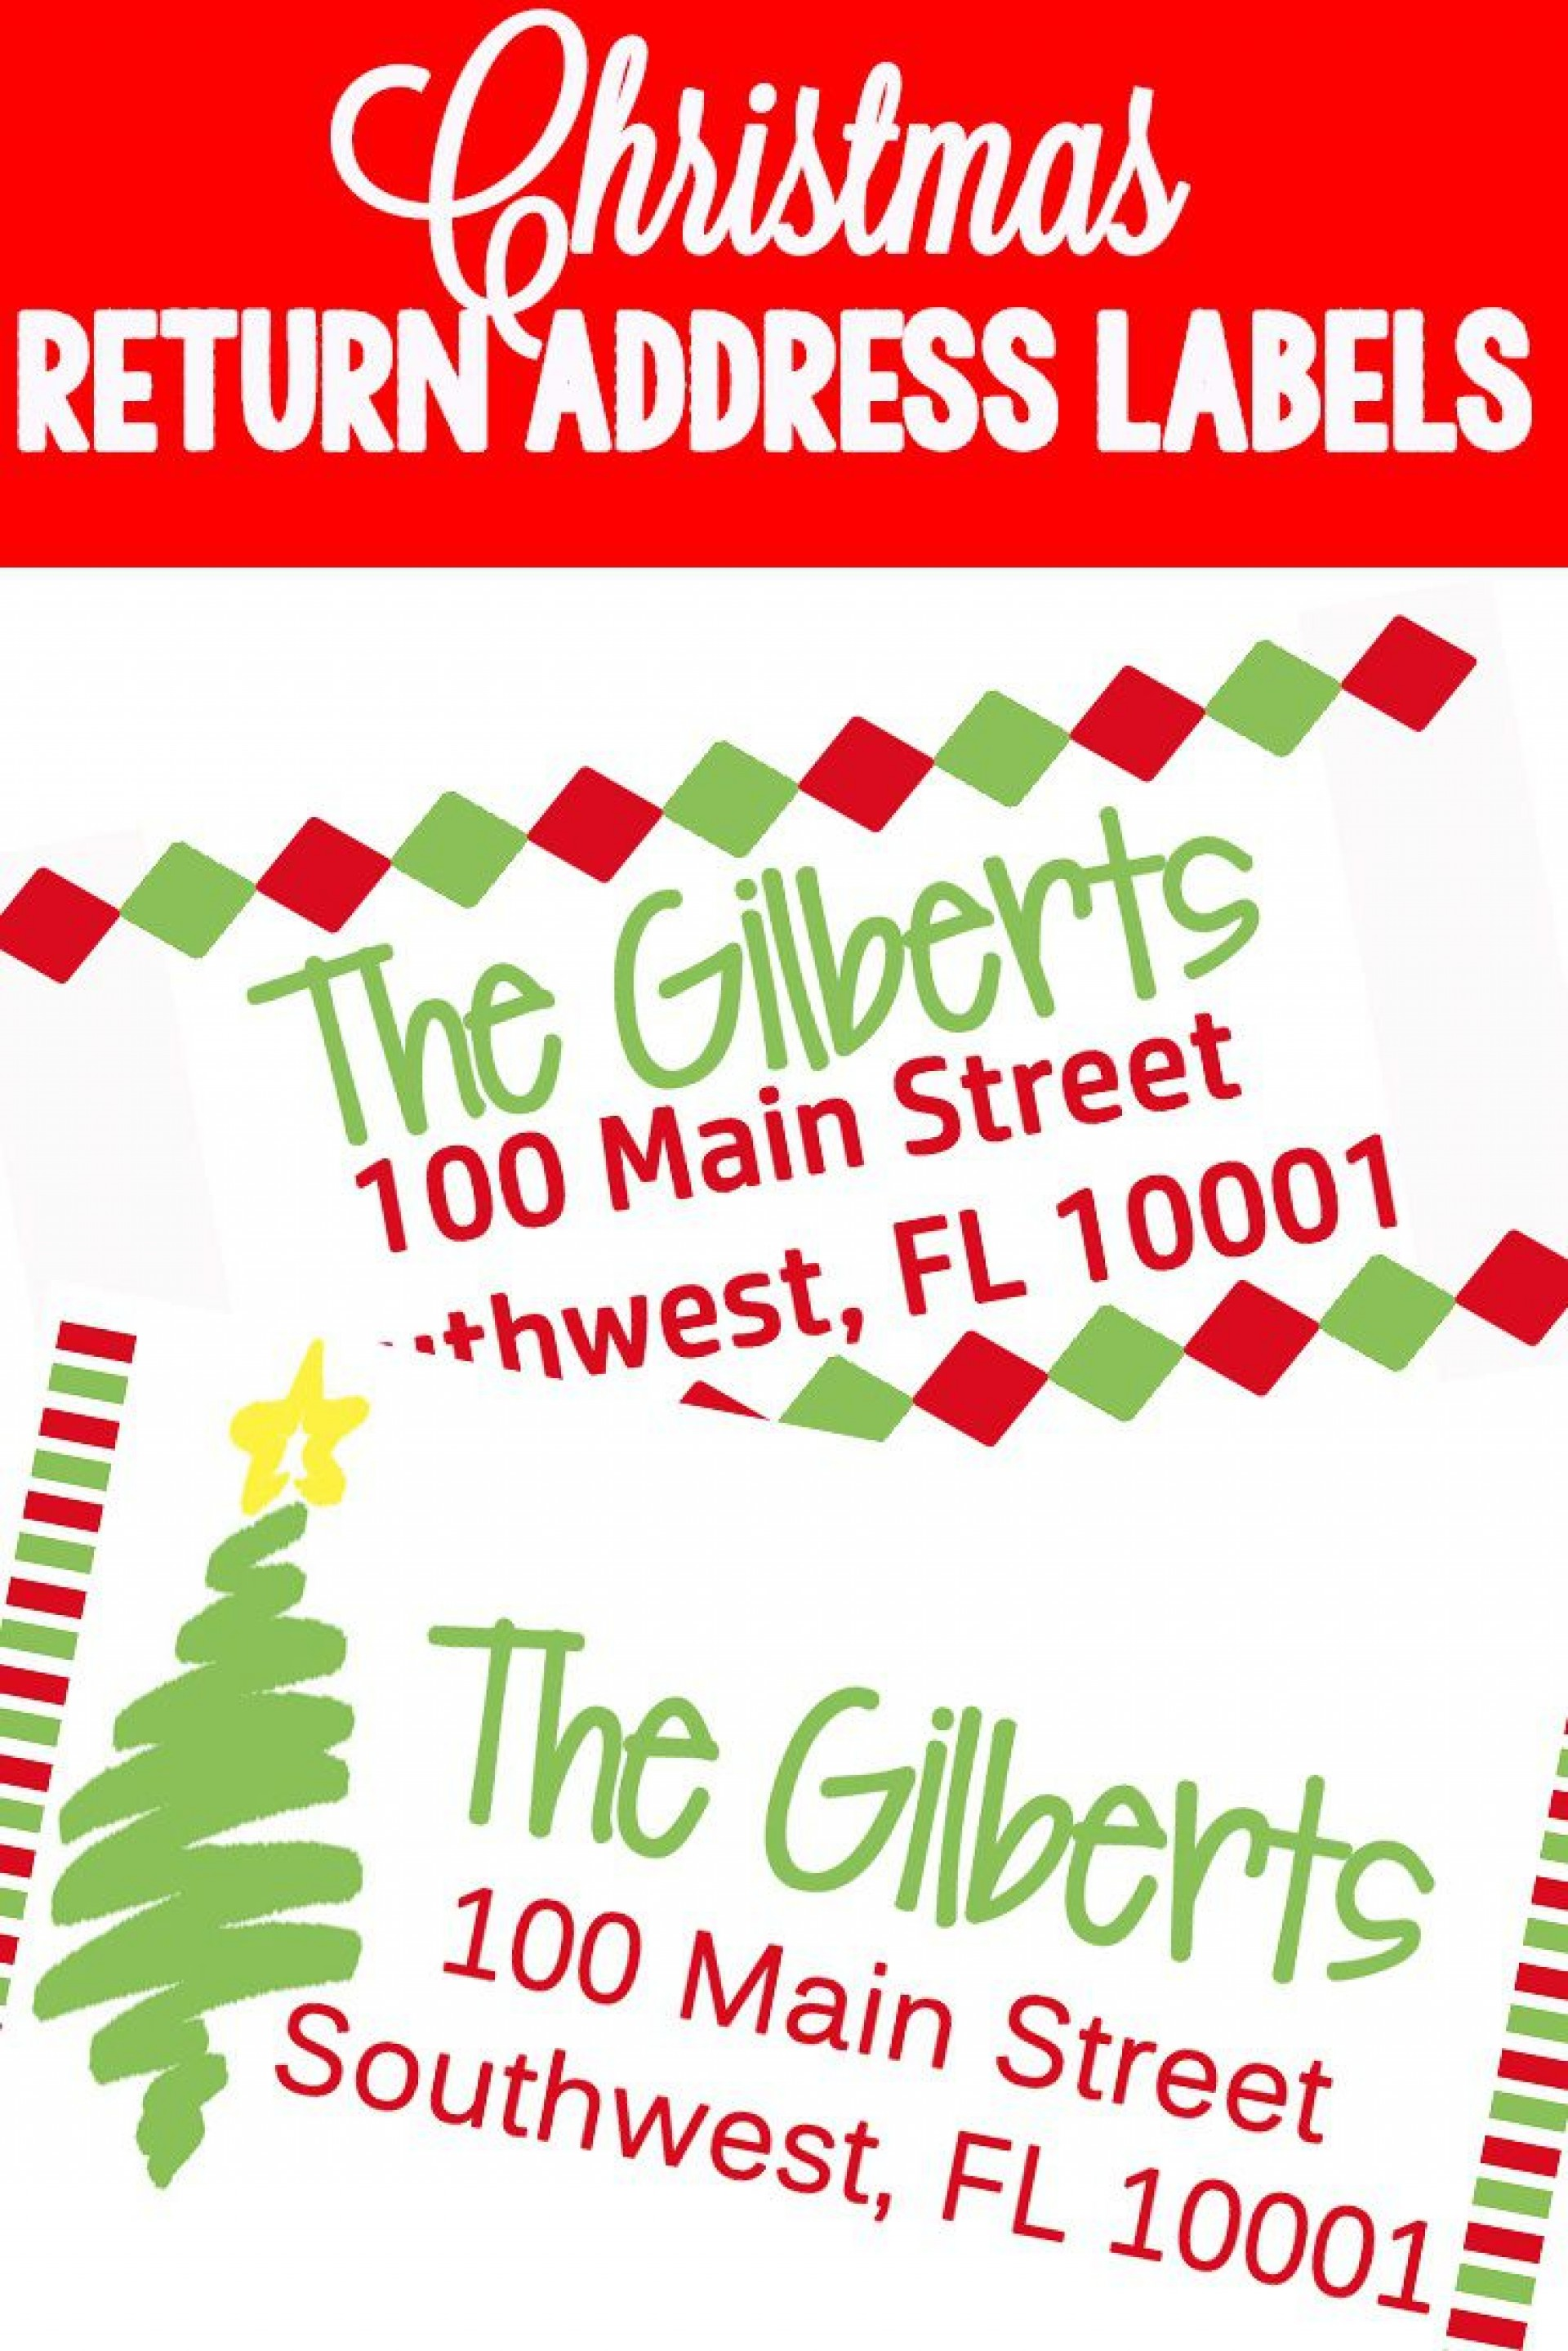 008 Breathtaking Christma Addres Label Template High Resolution  Free Download Shipping Card1920